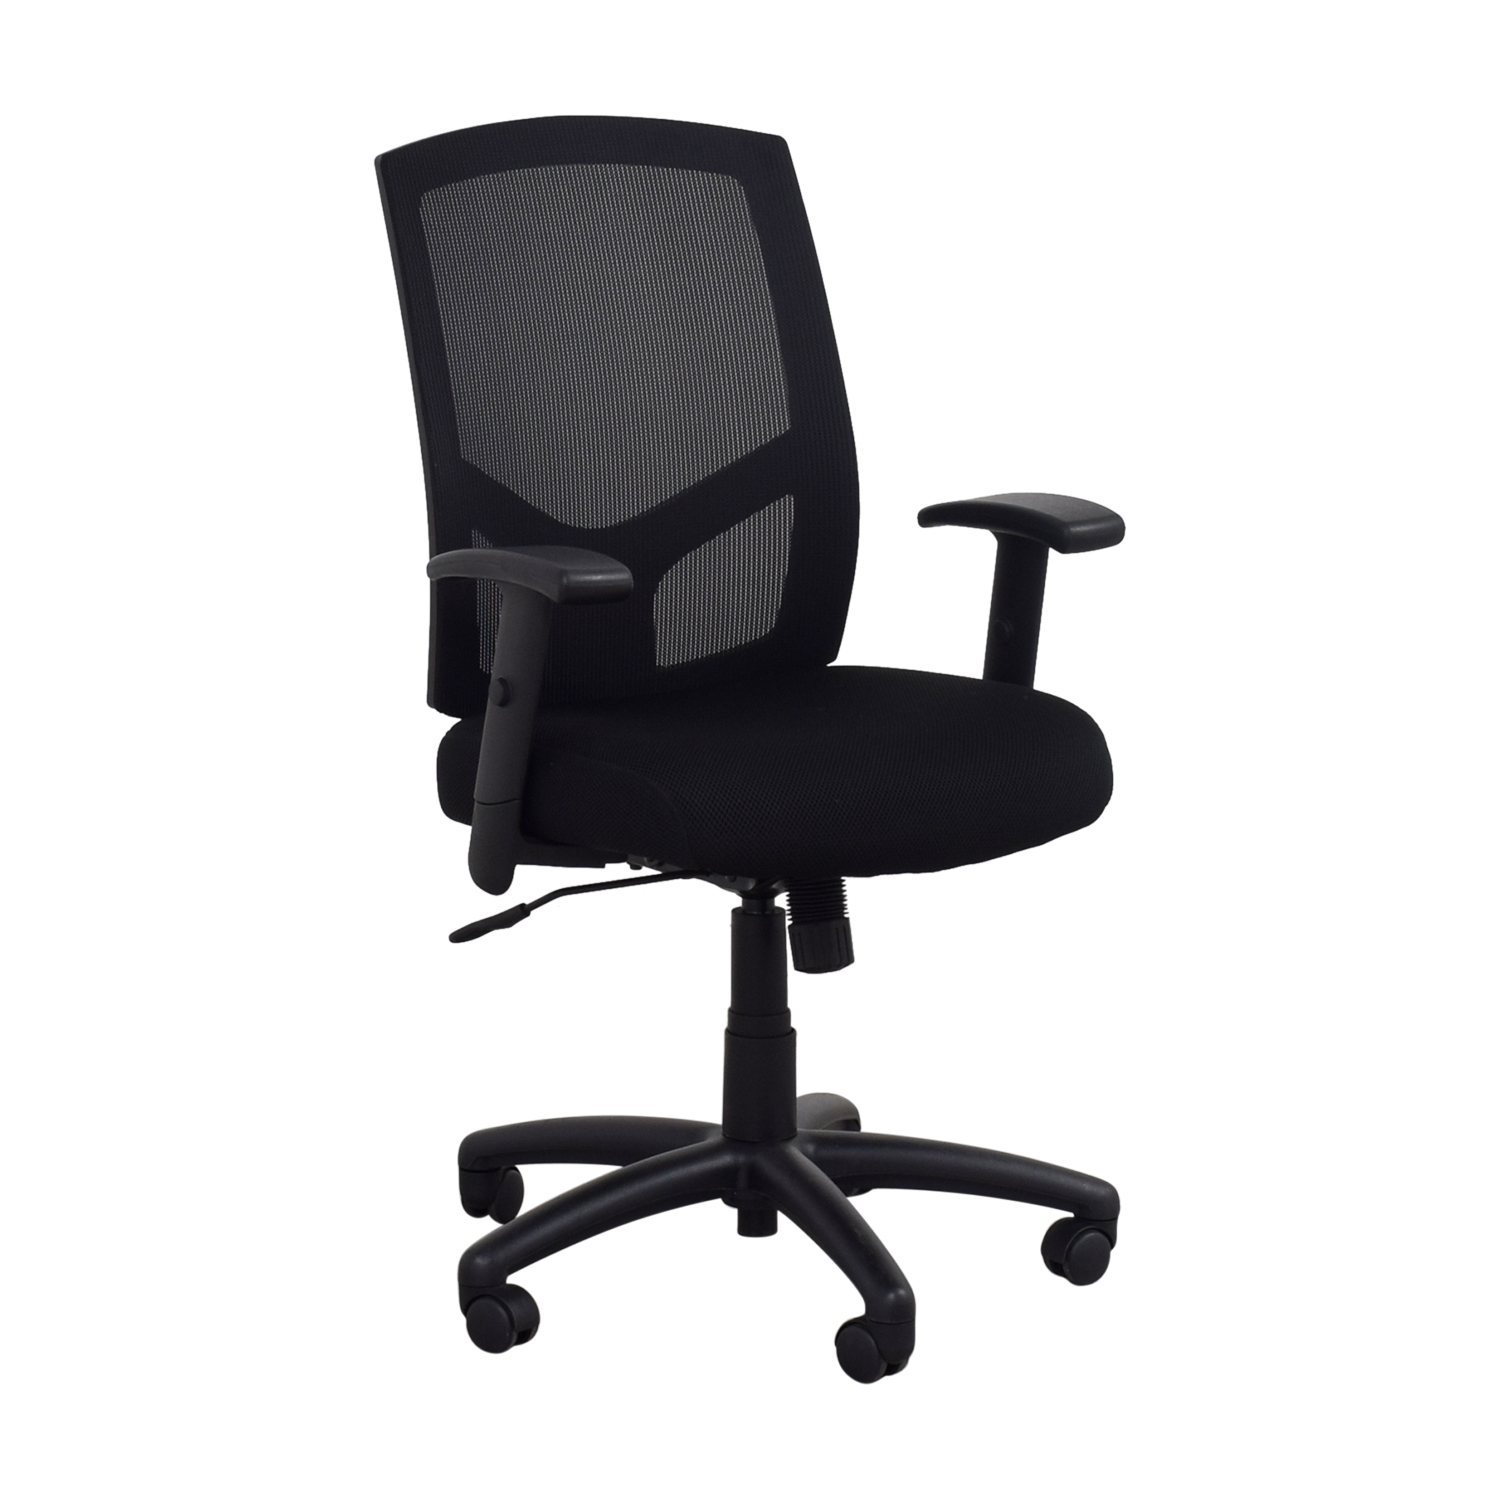 66 Off Offices To Go Offices To Go Black Office Chair